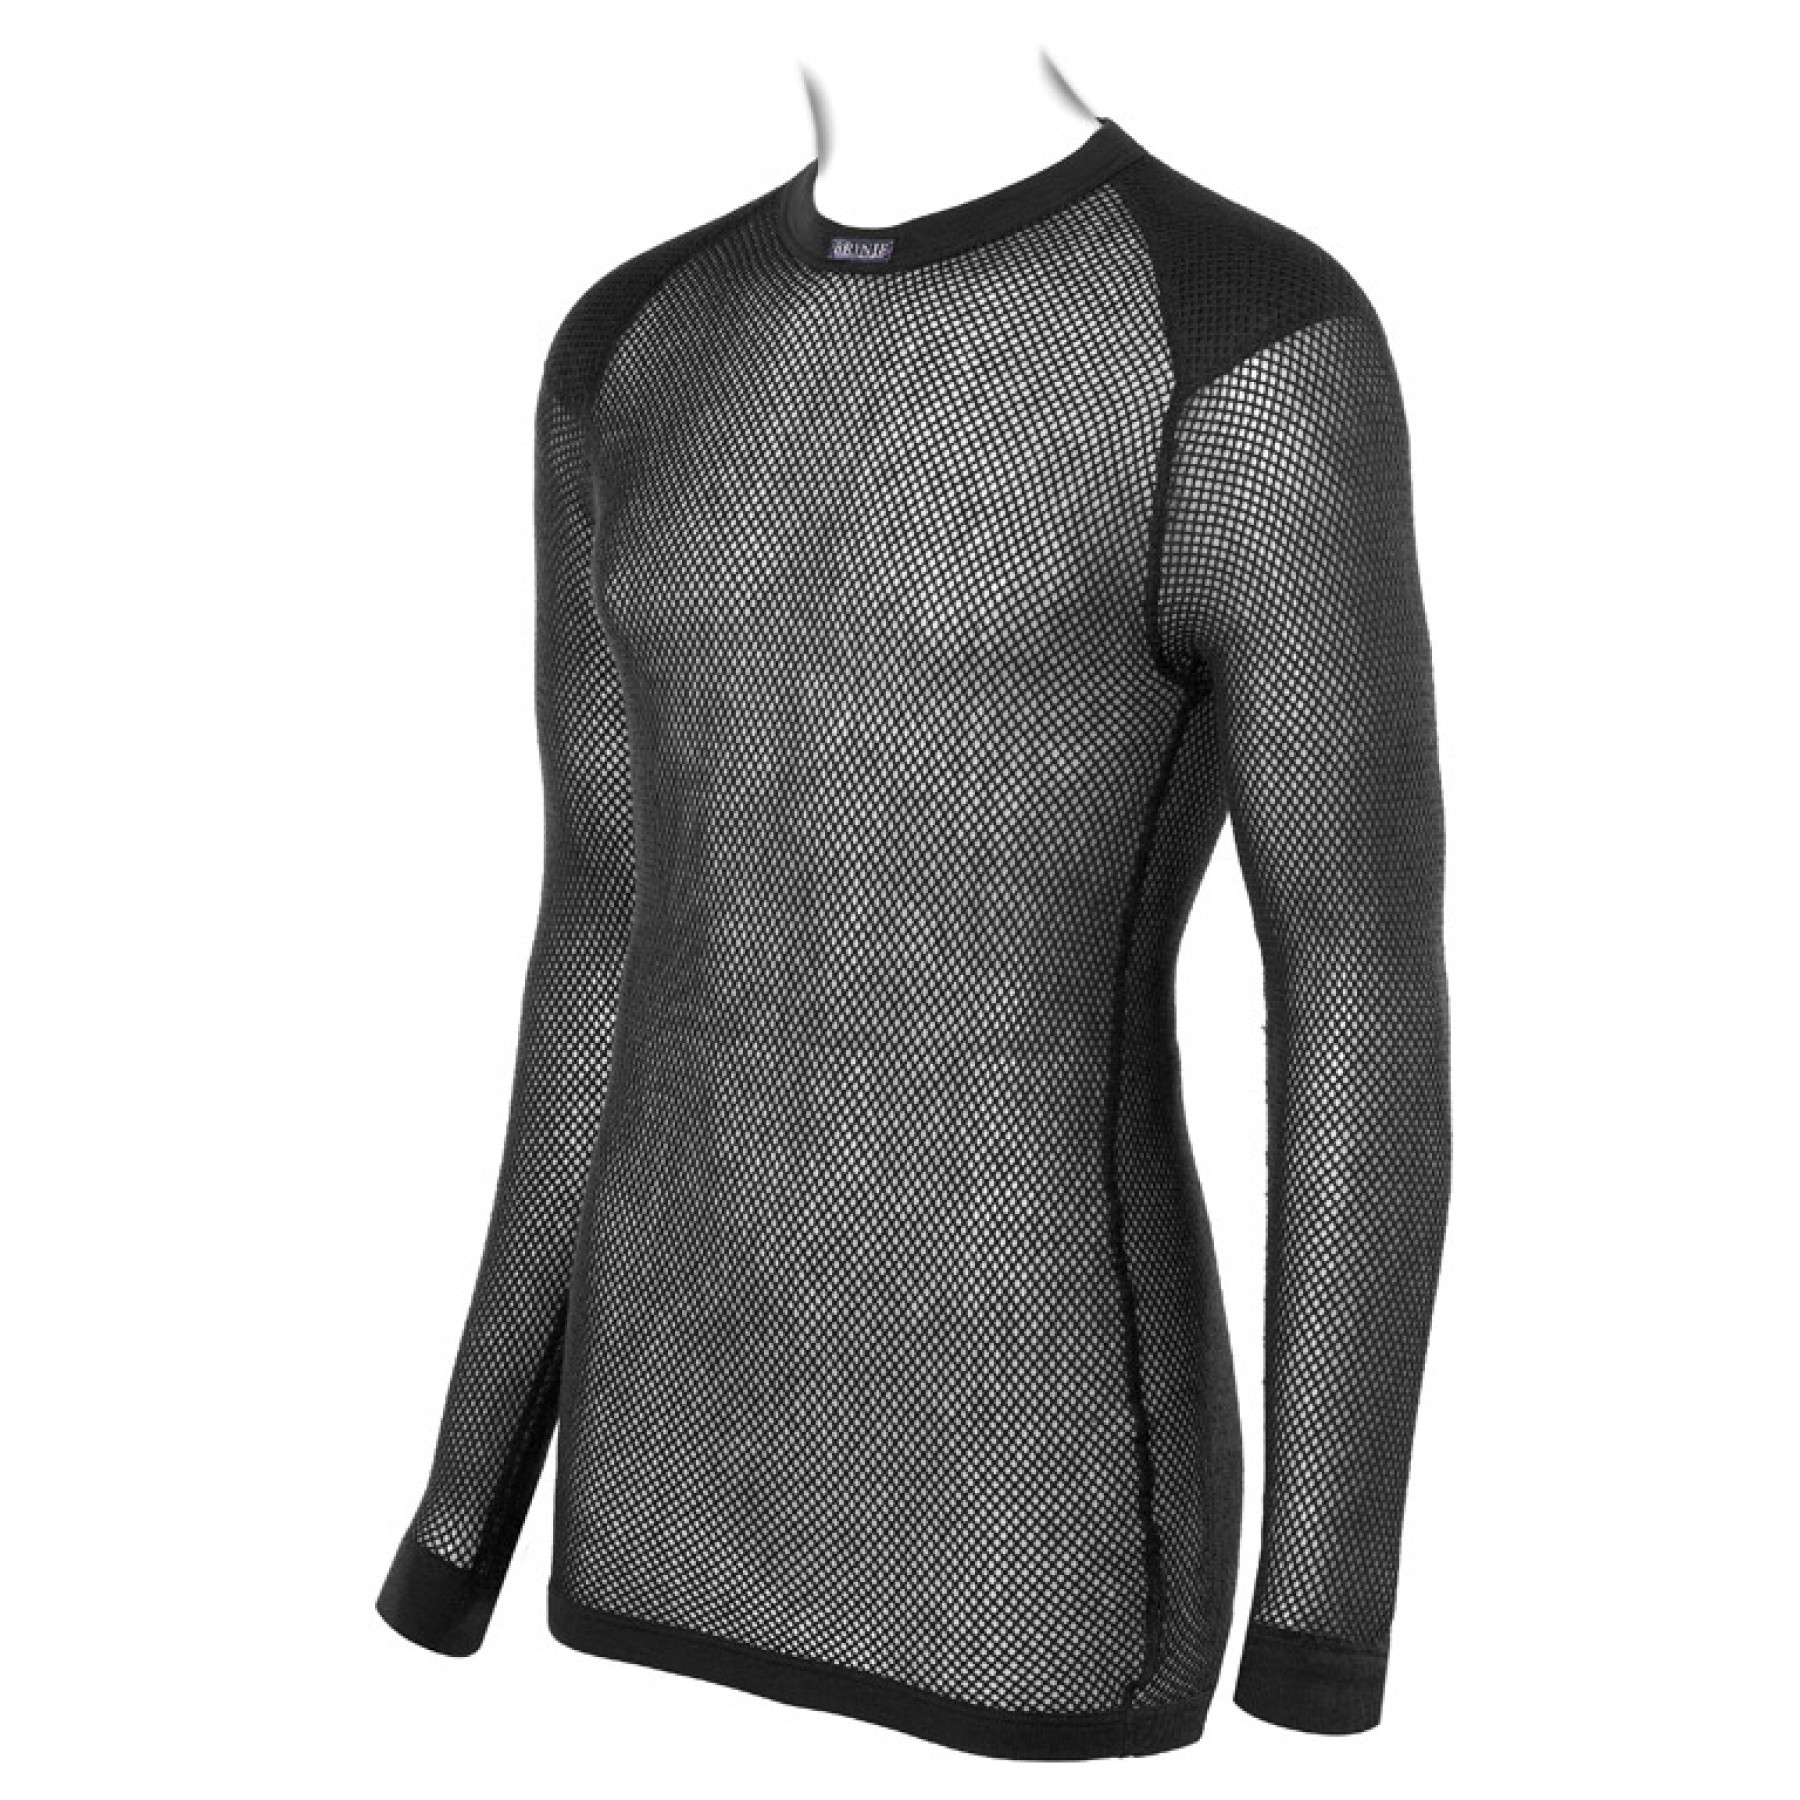 629e7cce Brynje Wool Thermo Shirt w/inlay Black | Fjellsport.no